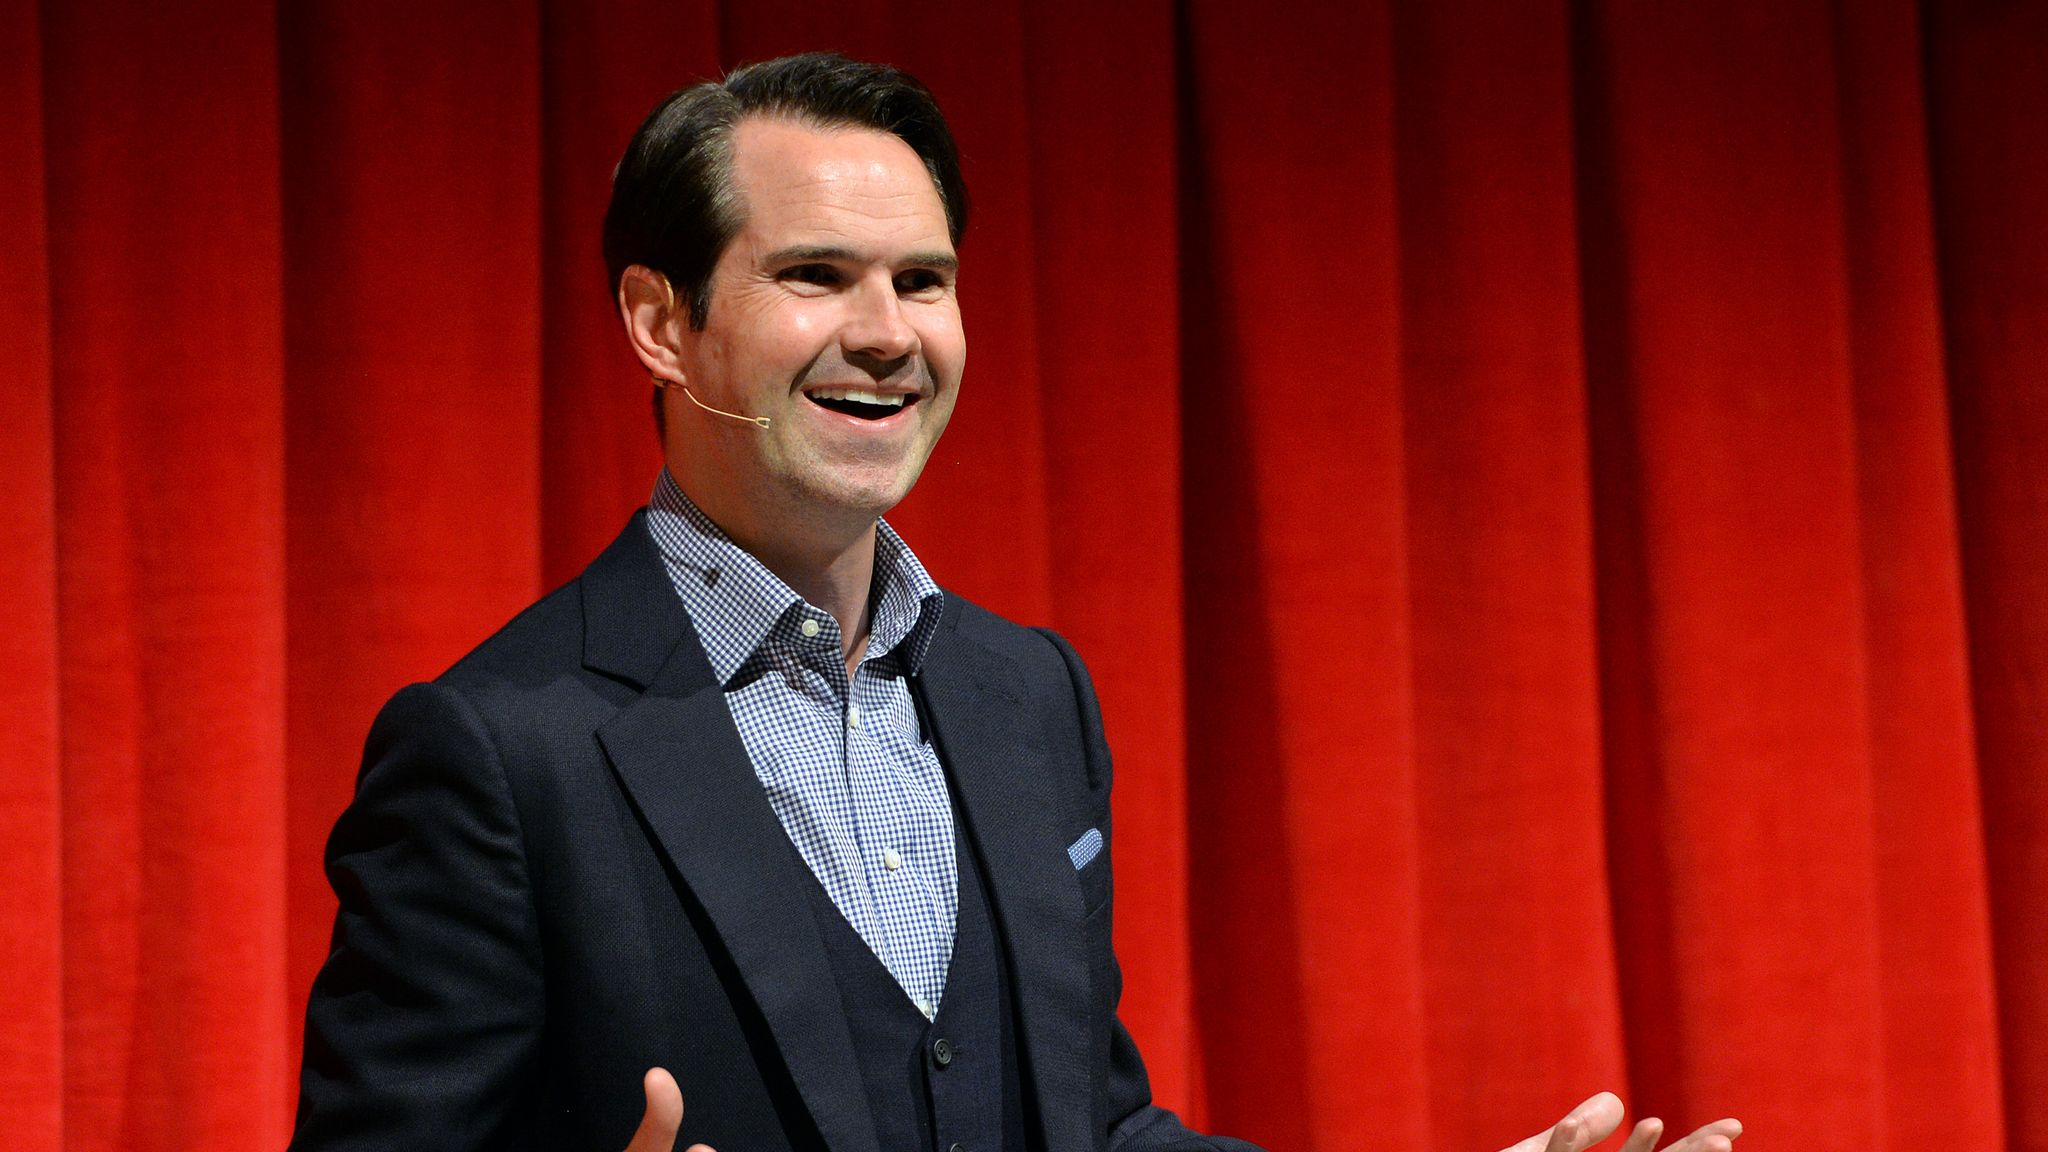 Jimmy Carr criticised by Little People charity for 'offensive' dwarf joke